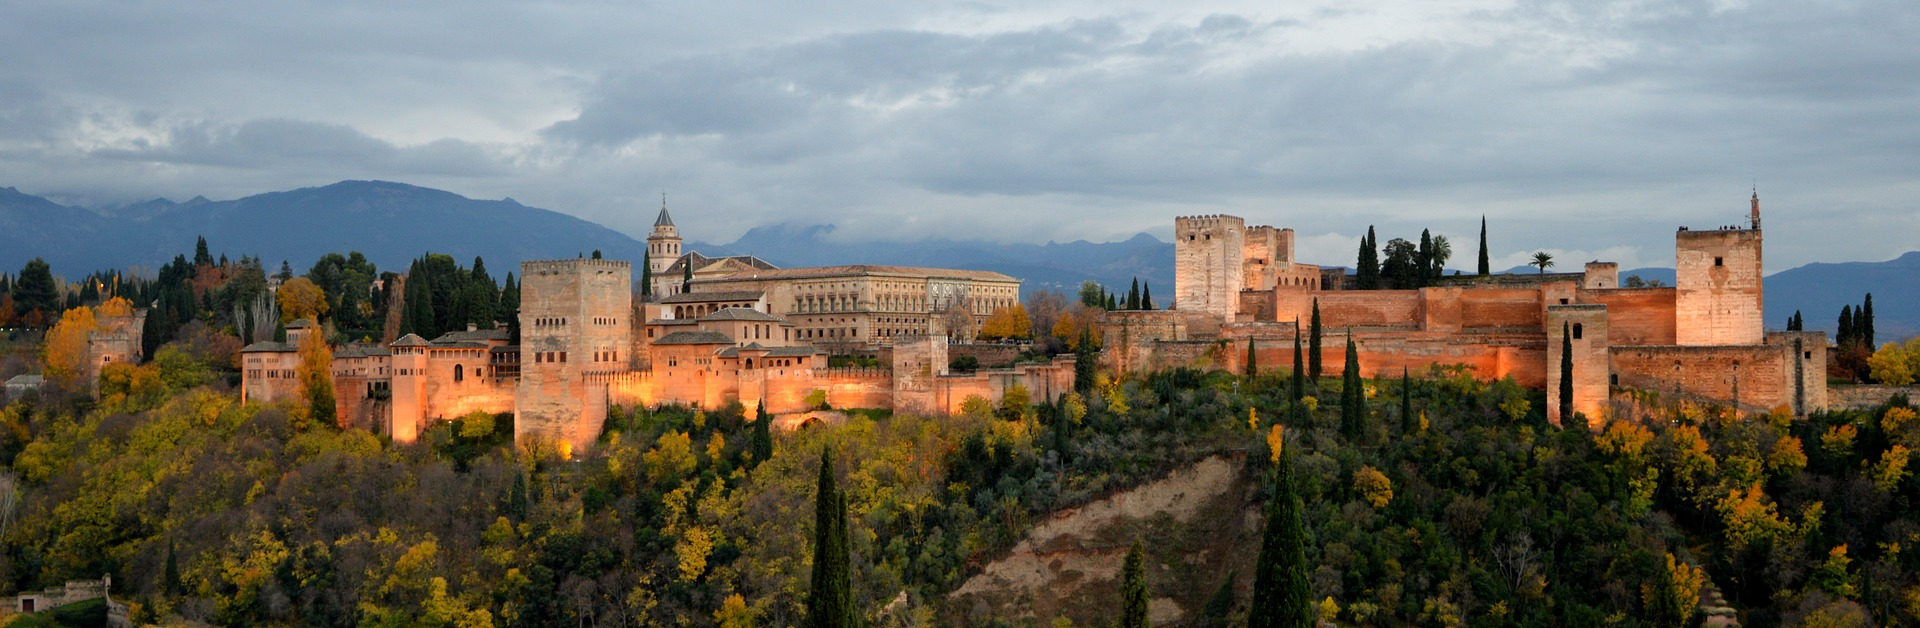 The Best Things to Do in Granada, Spain: A Three-Day Guide